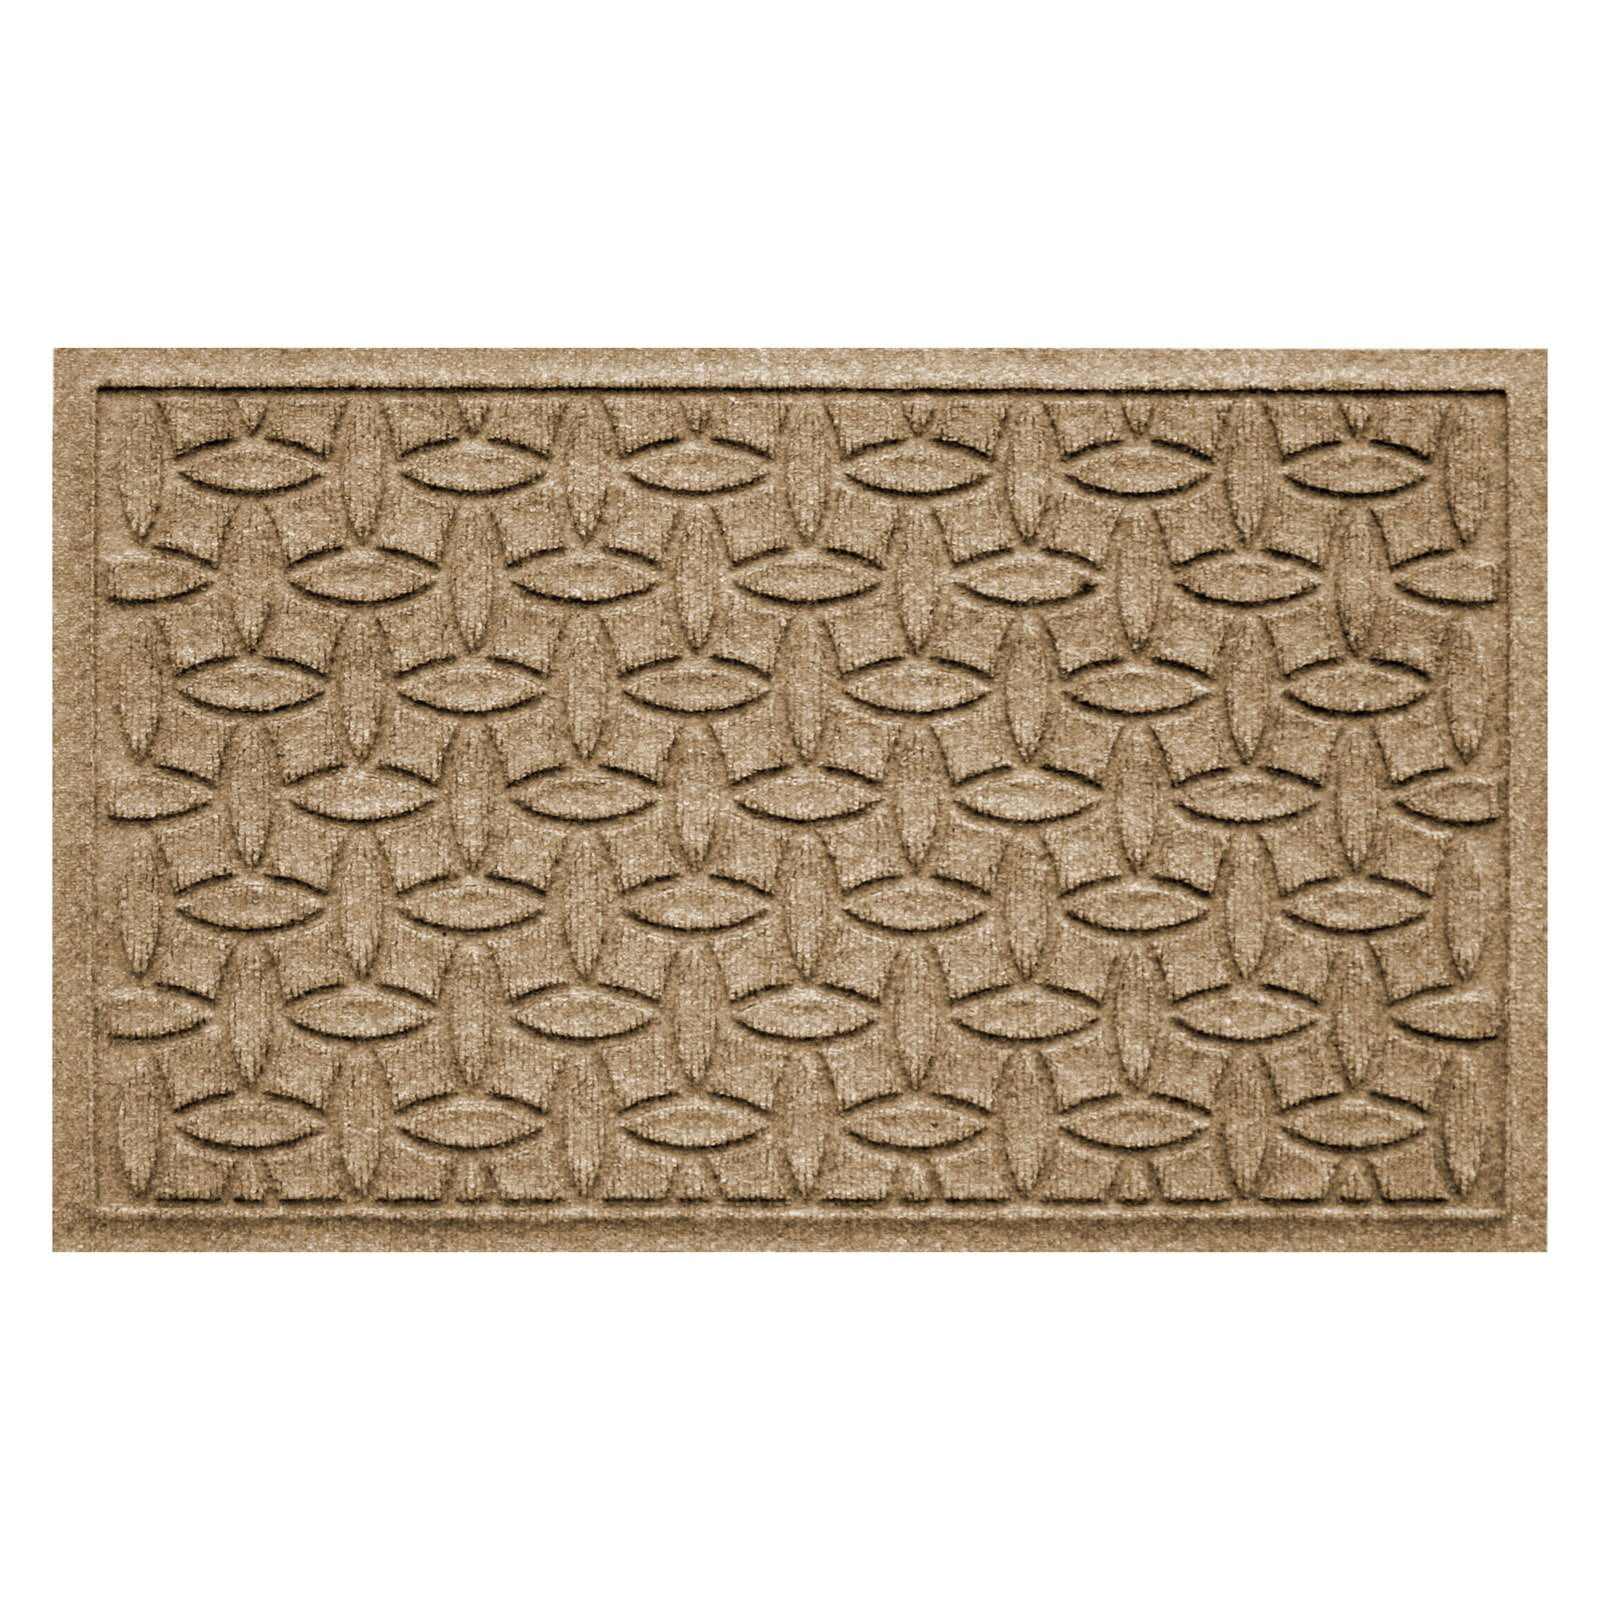 Bungalow Flooring Water Guard Elipse Indoor   Outdoor Doormat by